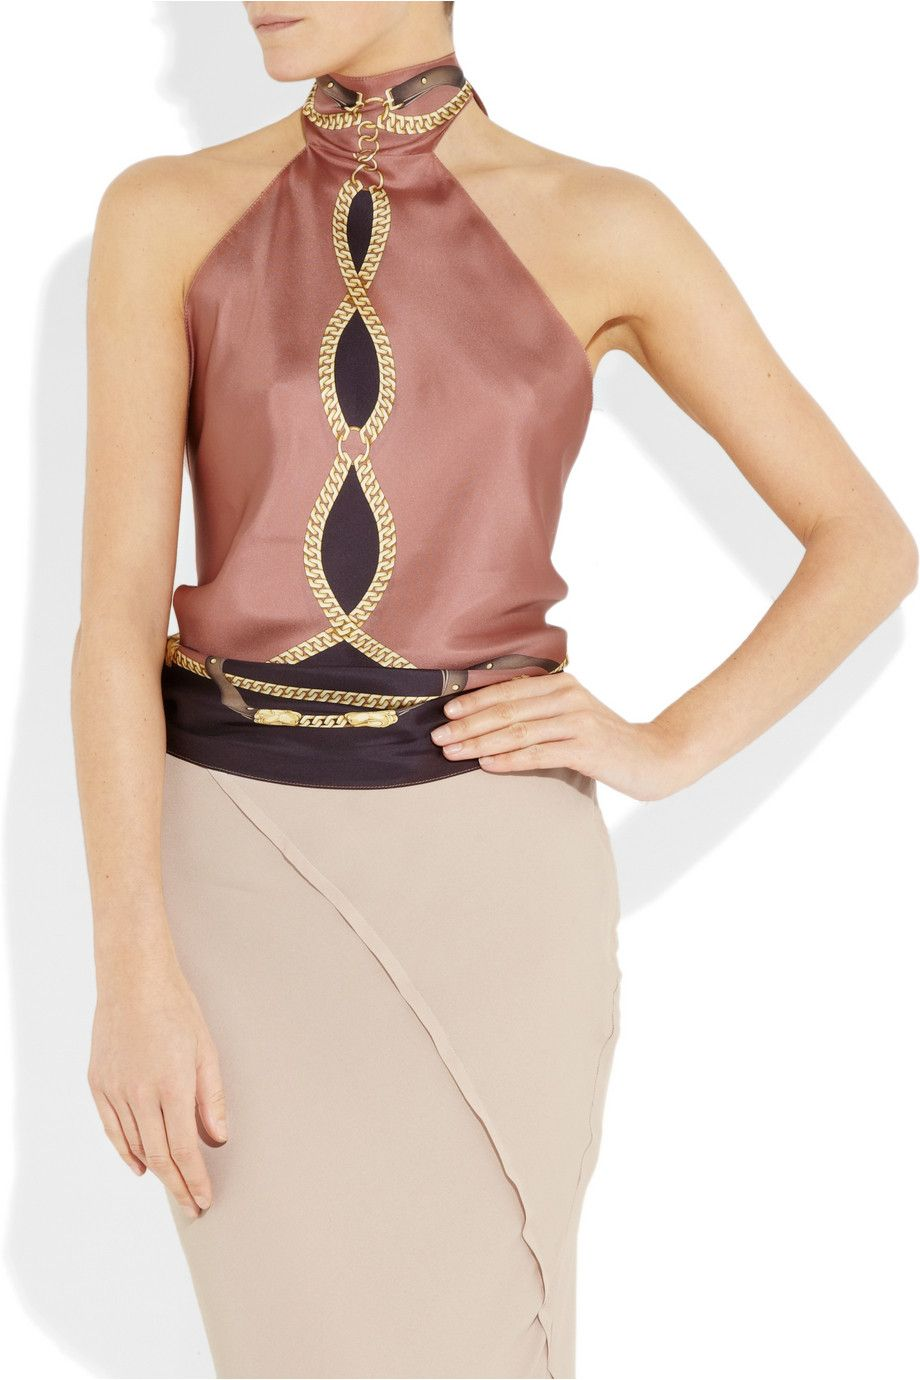 00f31a306 Gucci silk halter top | Must have Fashion in 2019 | Net a porter ...